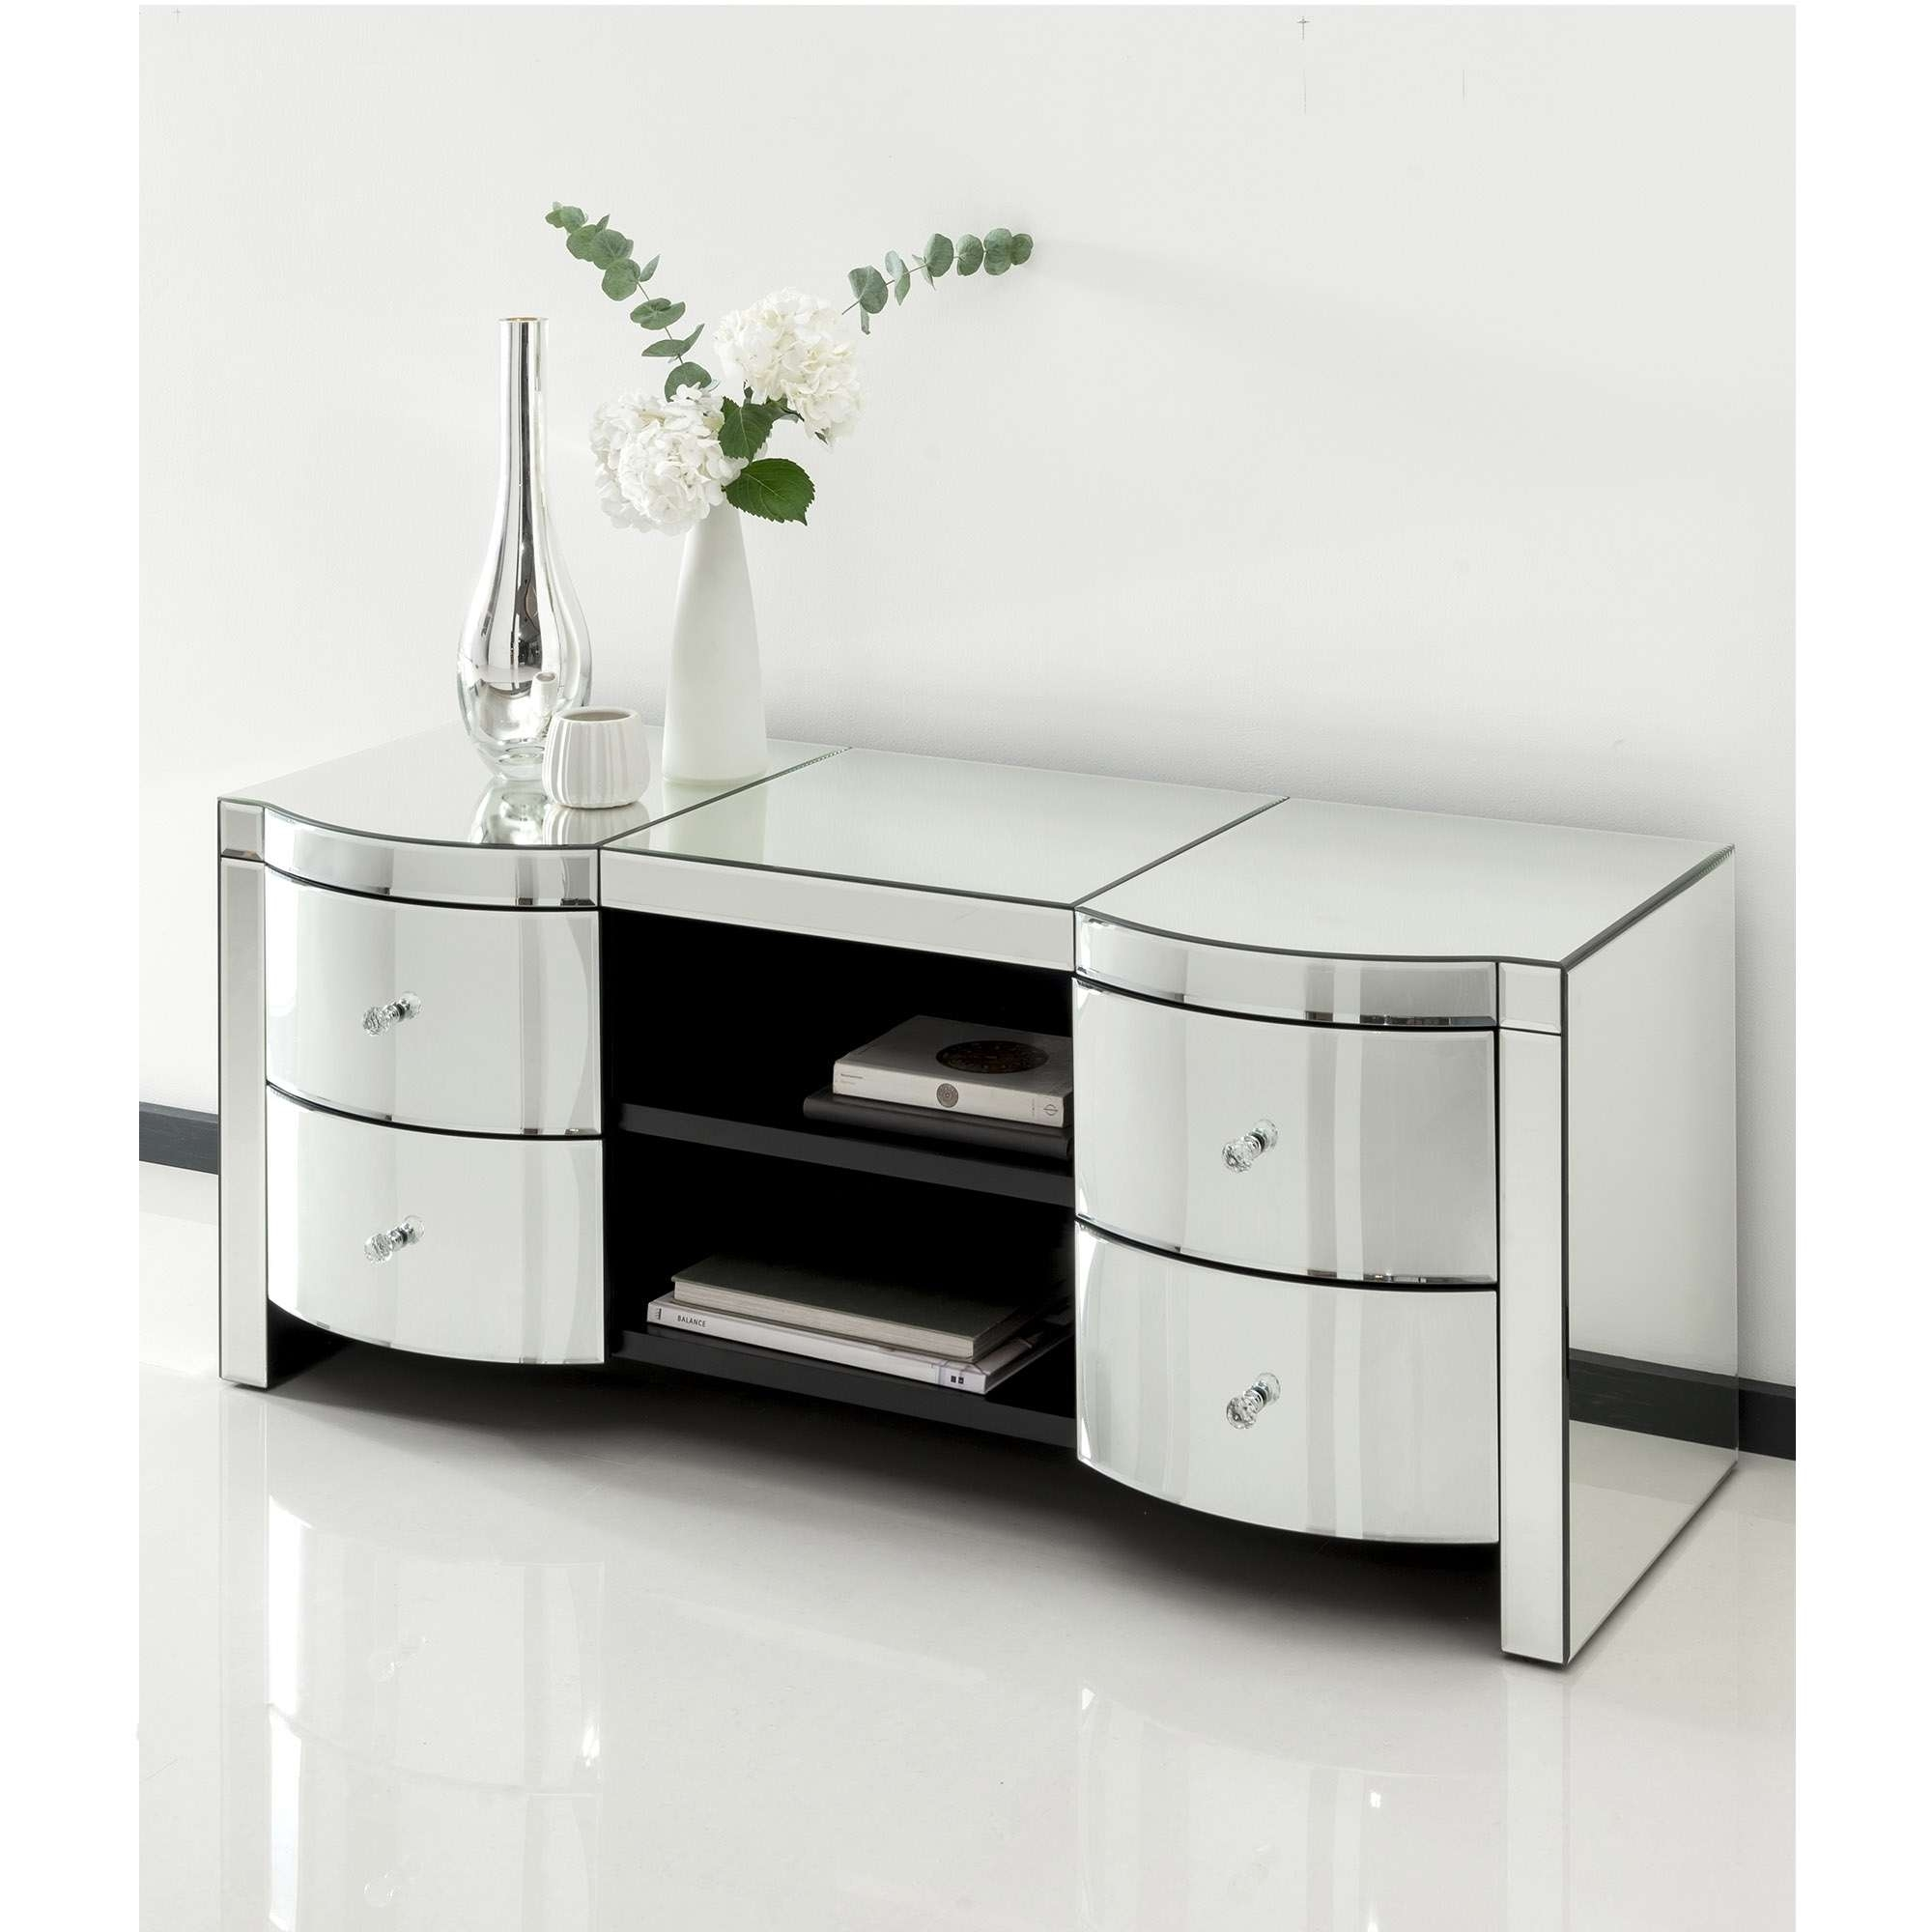 Romano Crystal Mirrored Tv Cabinet | Venetian Mirrored Furniture For Mirrored Tv Cabinets (View 1 of 20)